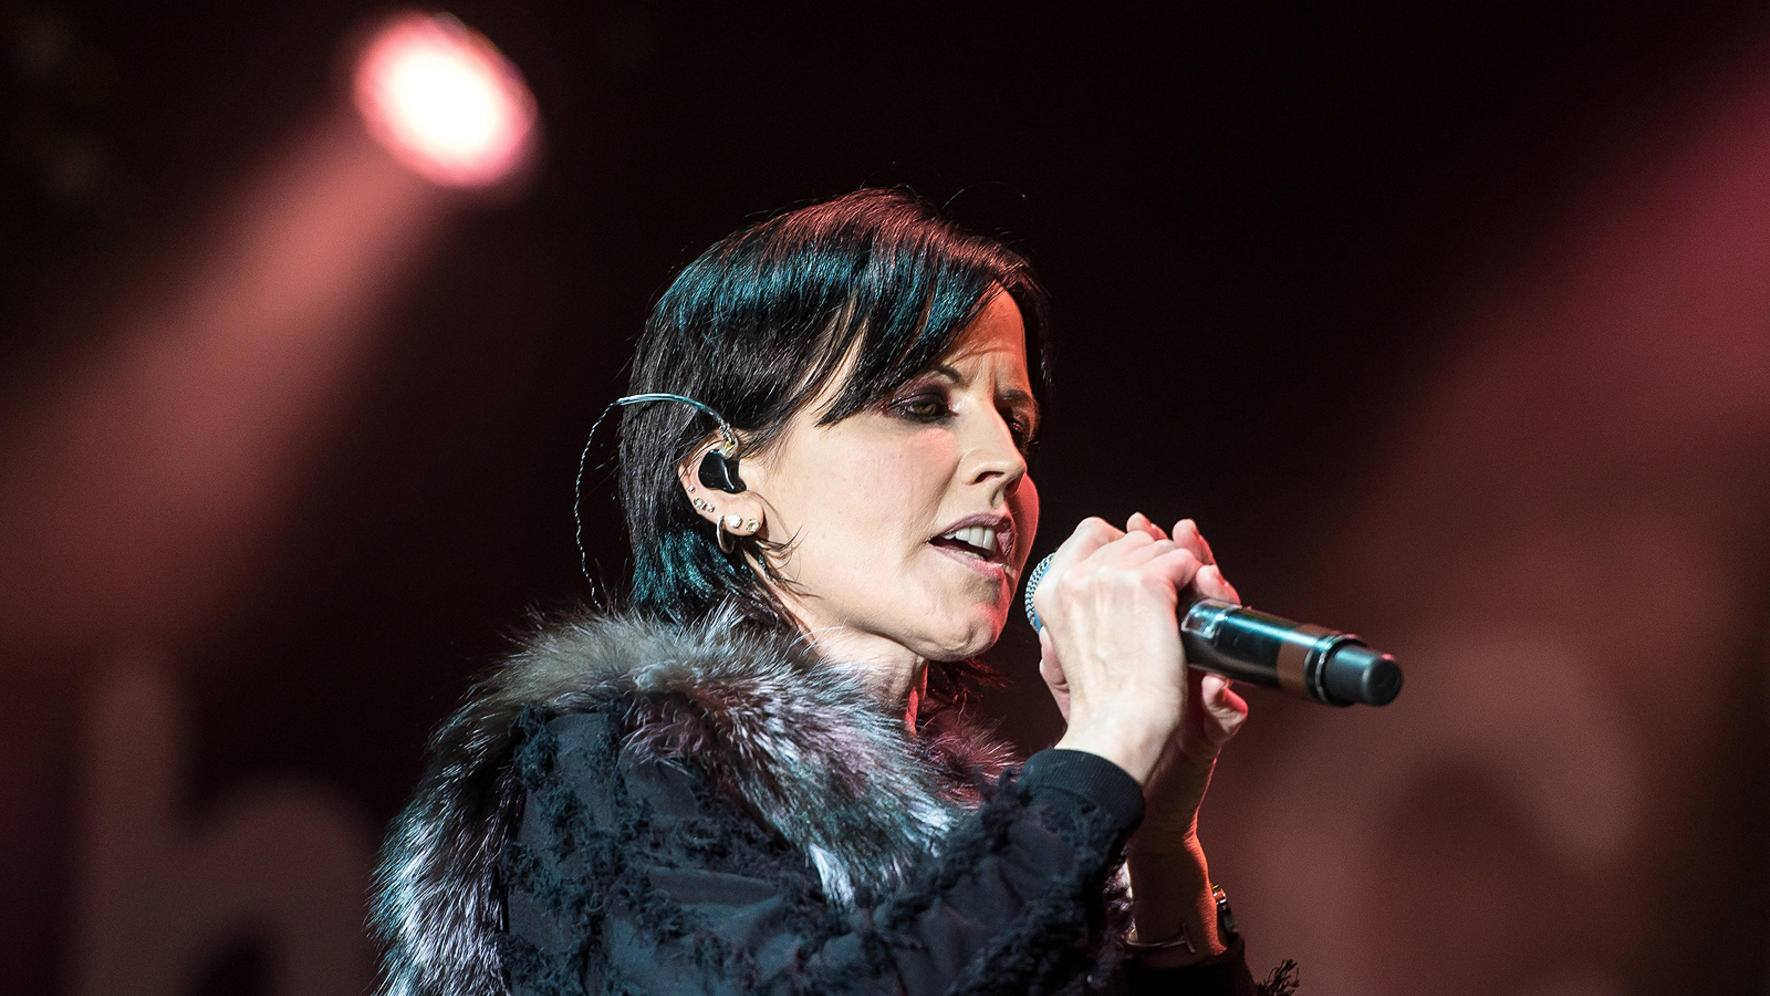 The Cranberries Dolores O'Riordan 2017